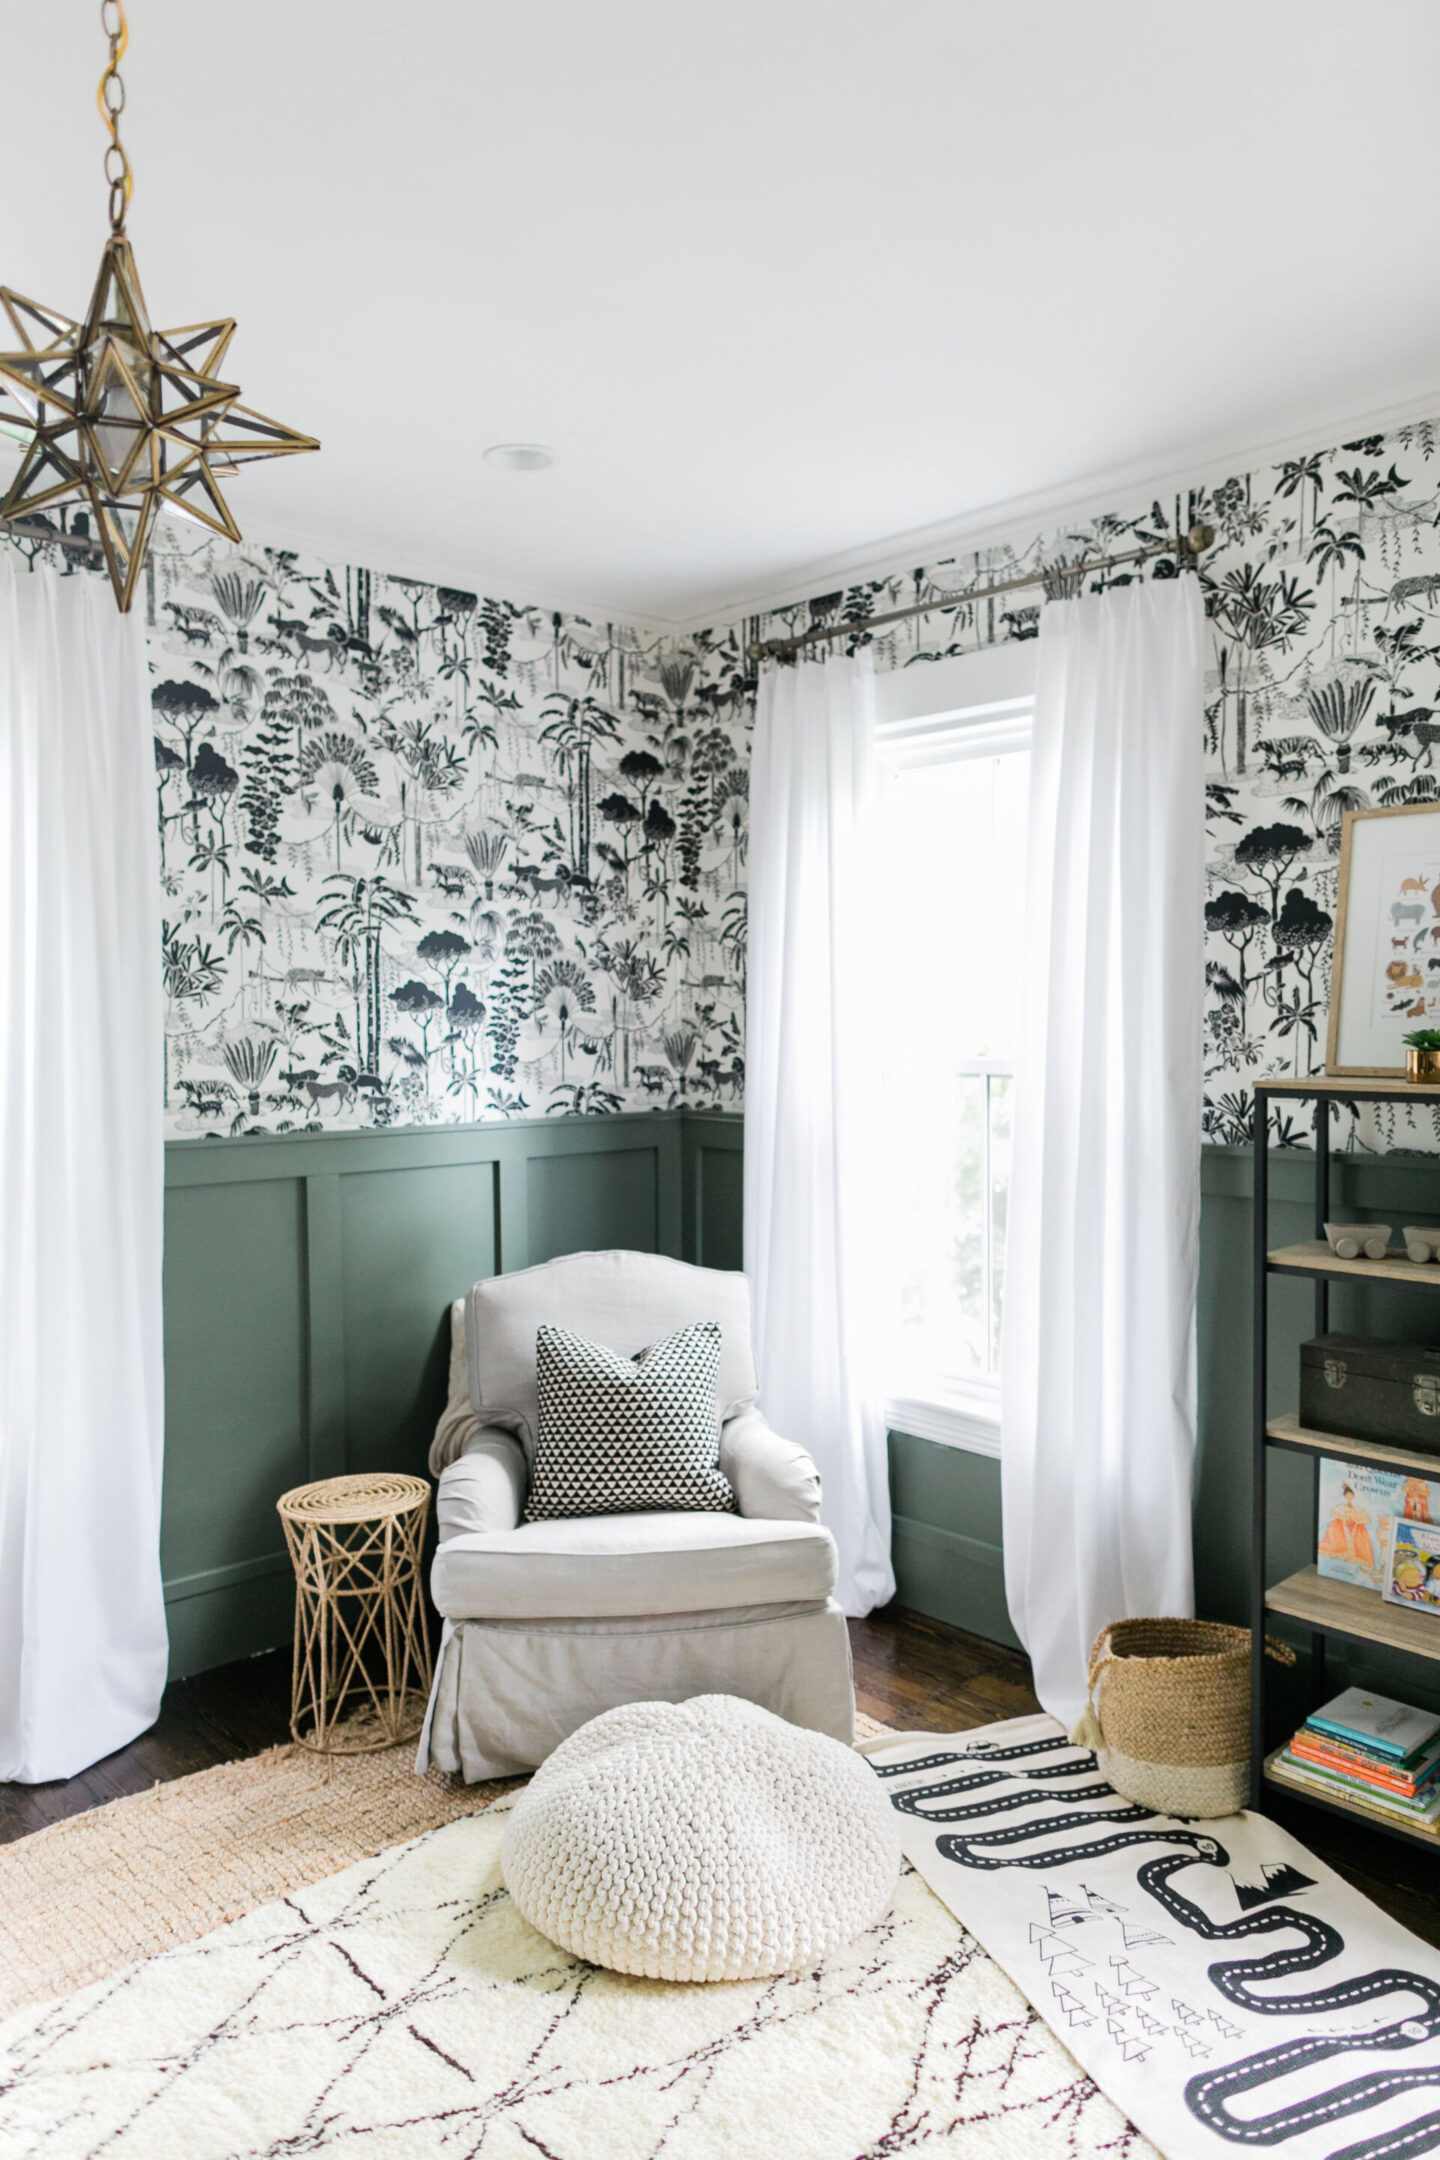 Rosemary - a Sherwin-Williams green paint is subdued by mixing it 50% for the trim in a boy's bedroom by Finding Lovely. #sherwinwilliamsrosemary #rosemary #paintcolors #greenpaintcolors